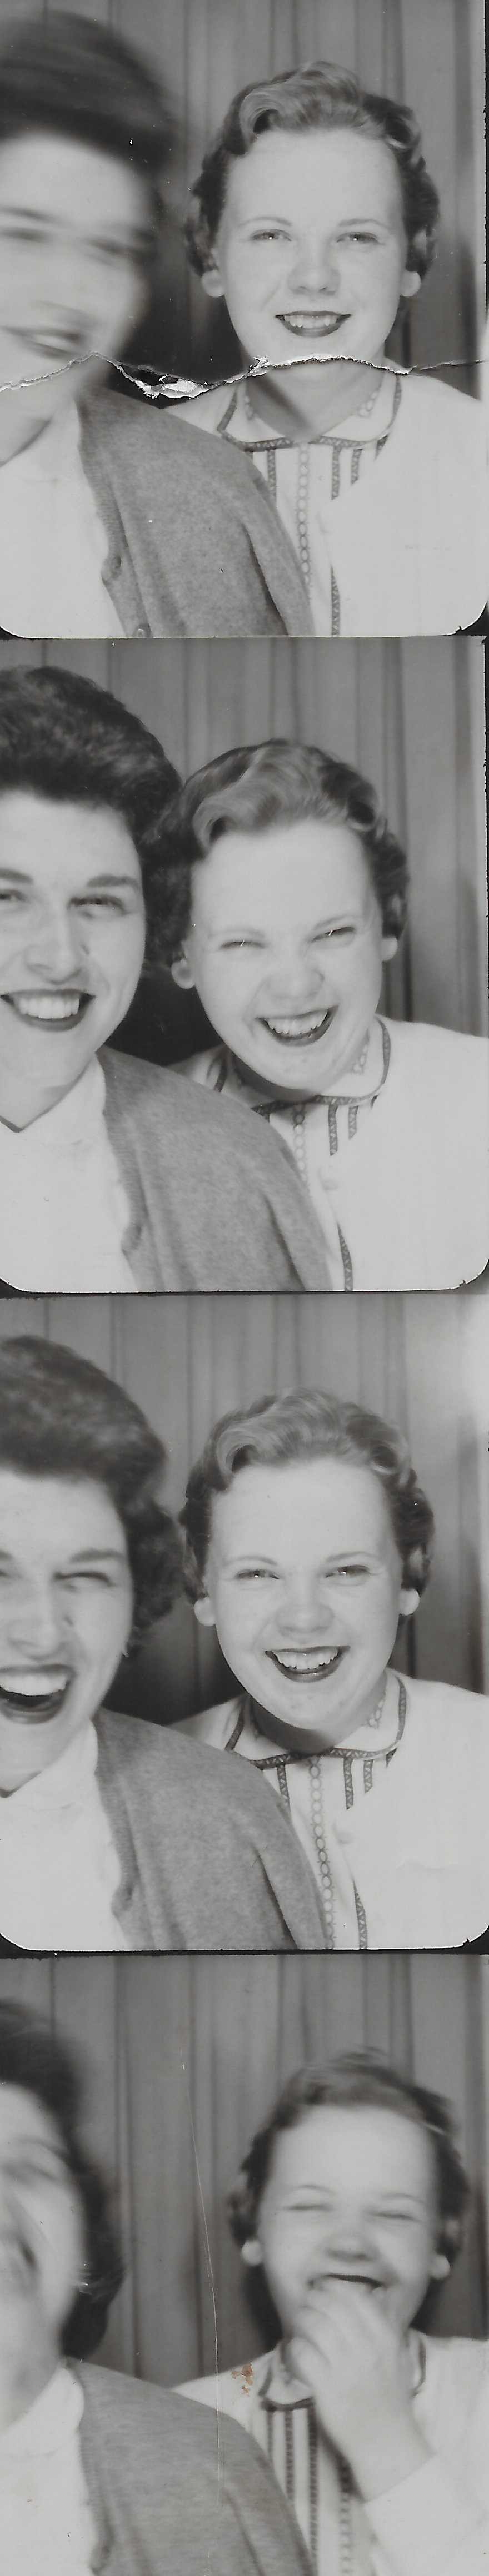 My grandma (on the right) and her friend in a photo booth 1958